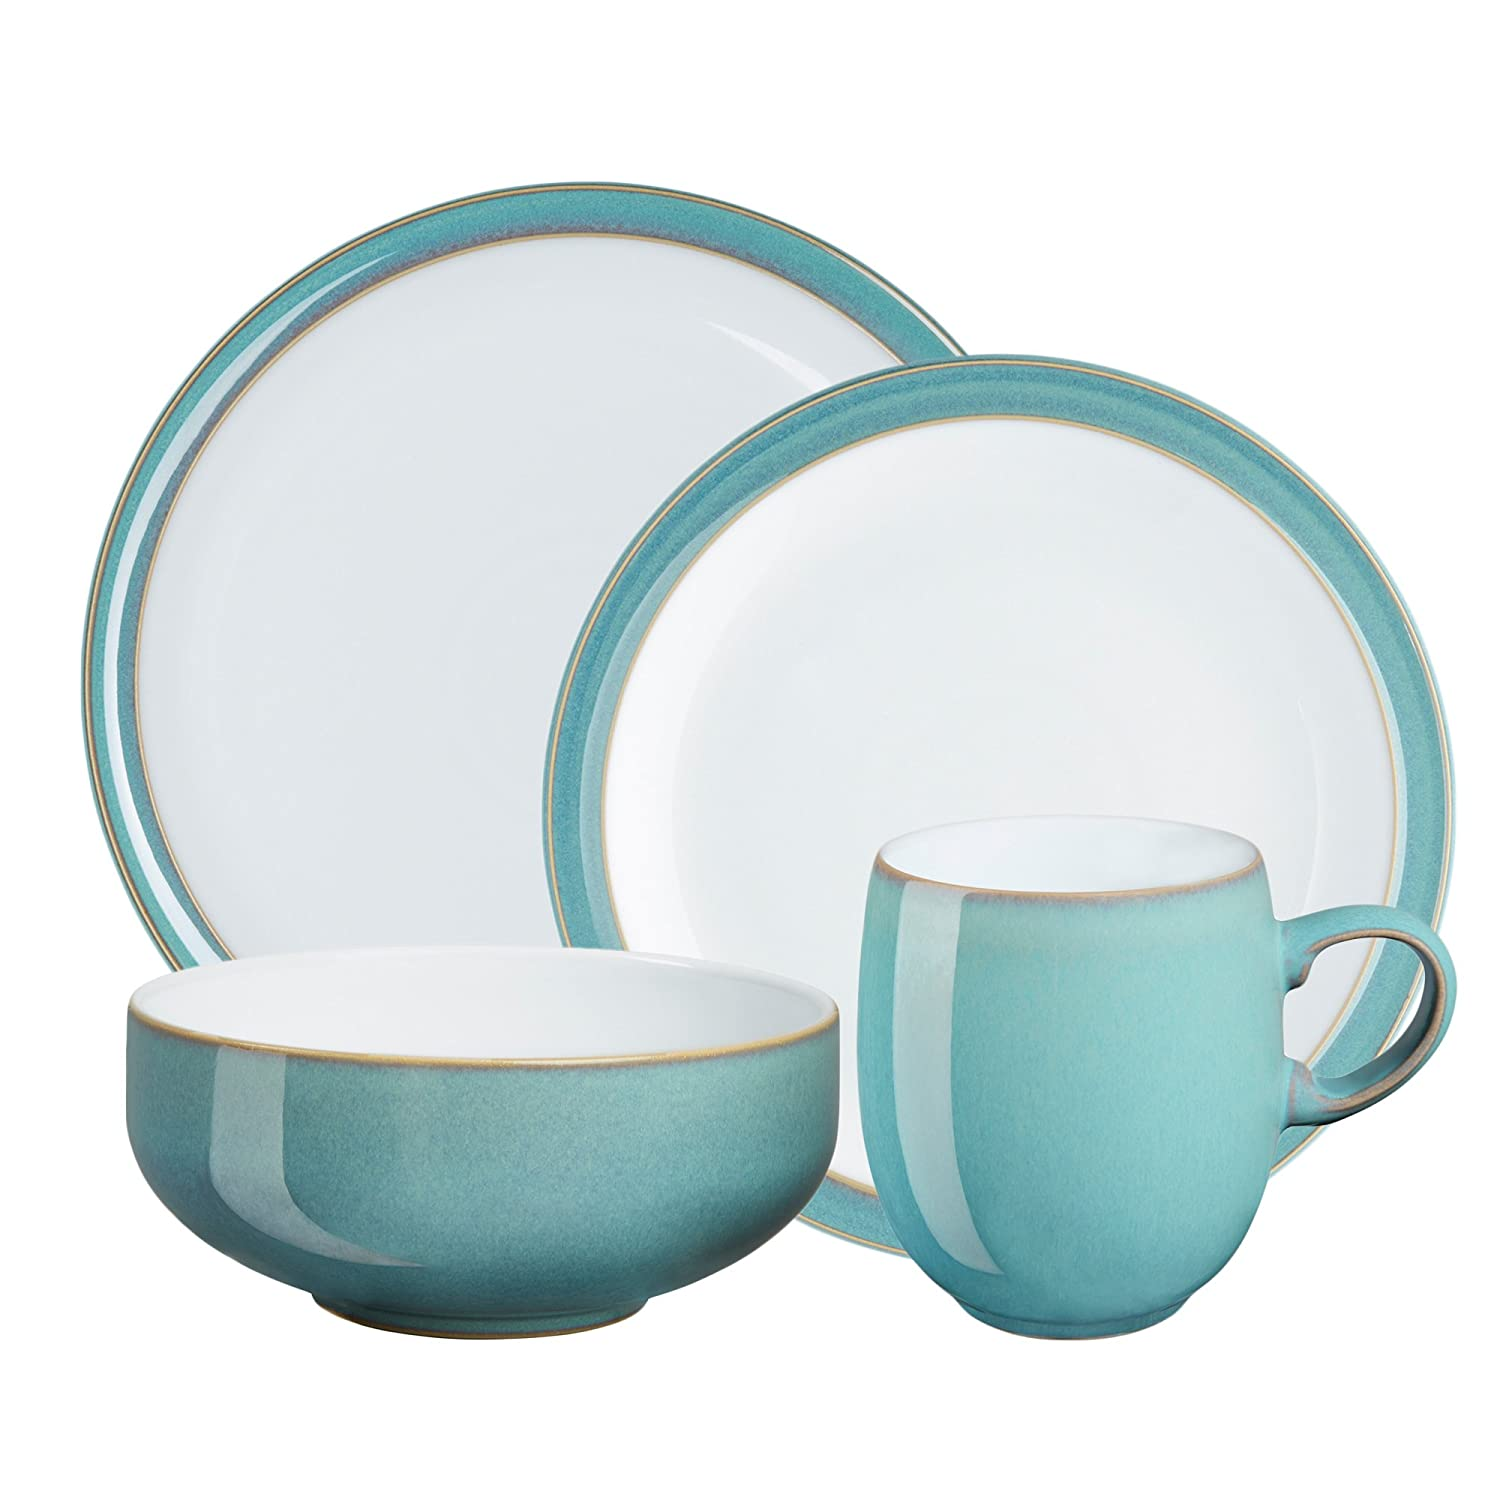 sc 1 st  Amazon.com & Amazon.com: Denby Azure 16-Piece Dinnerware Set: Kitchen u0026 Dining